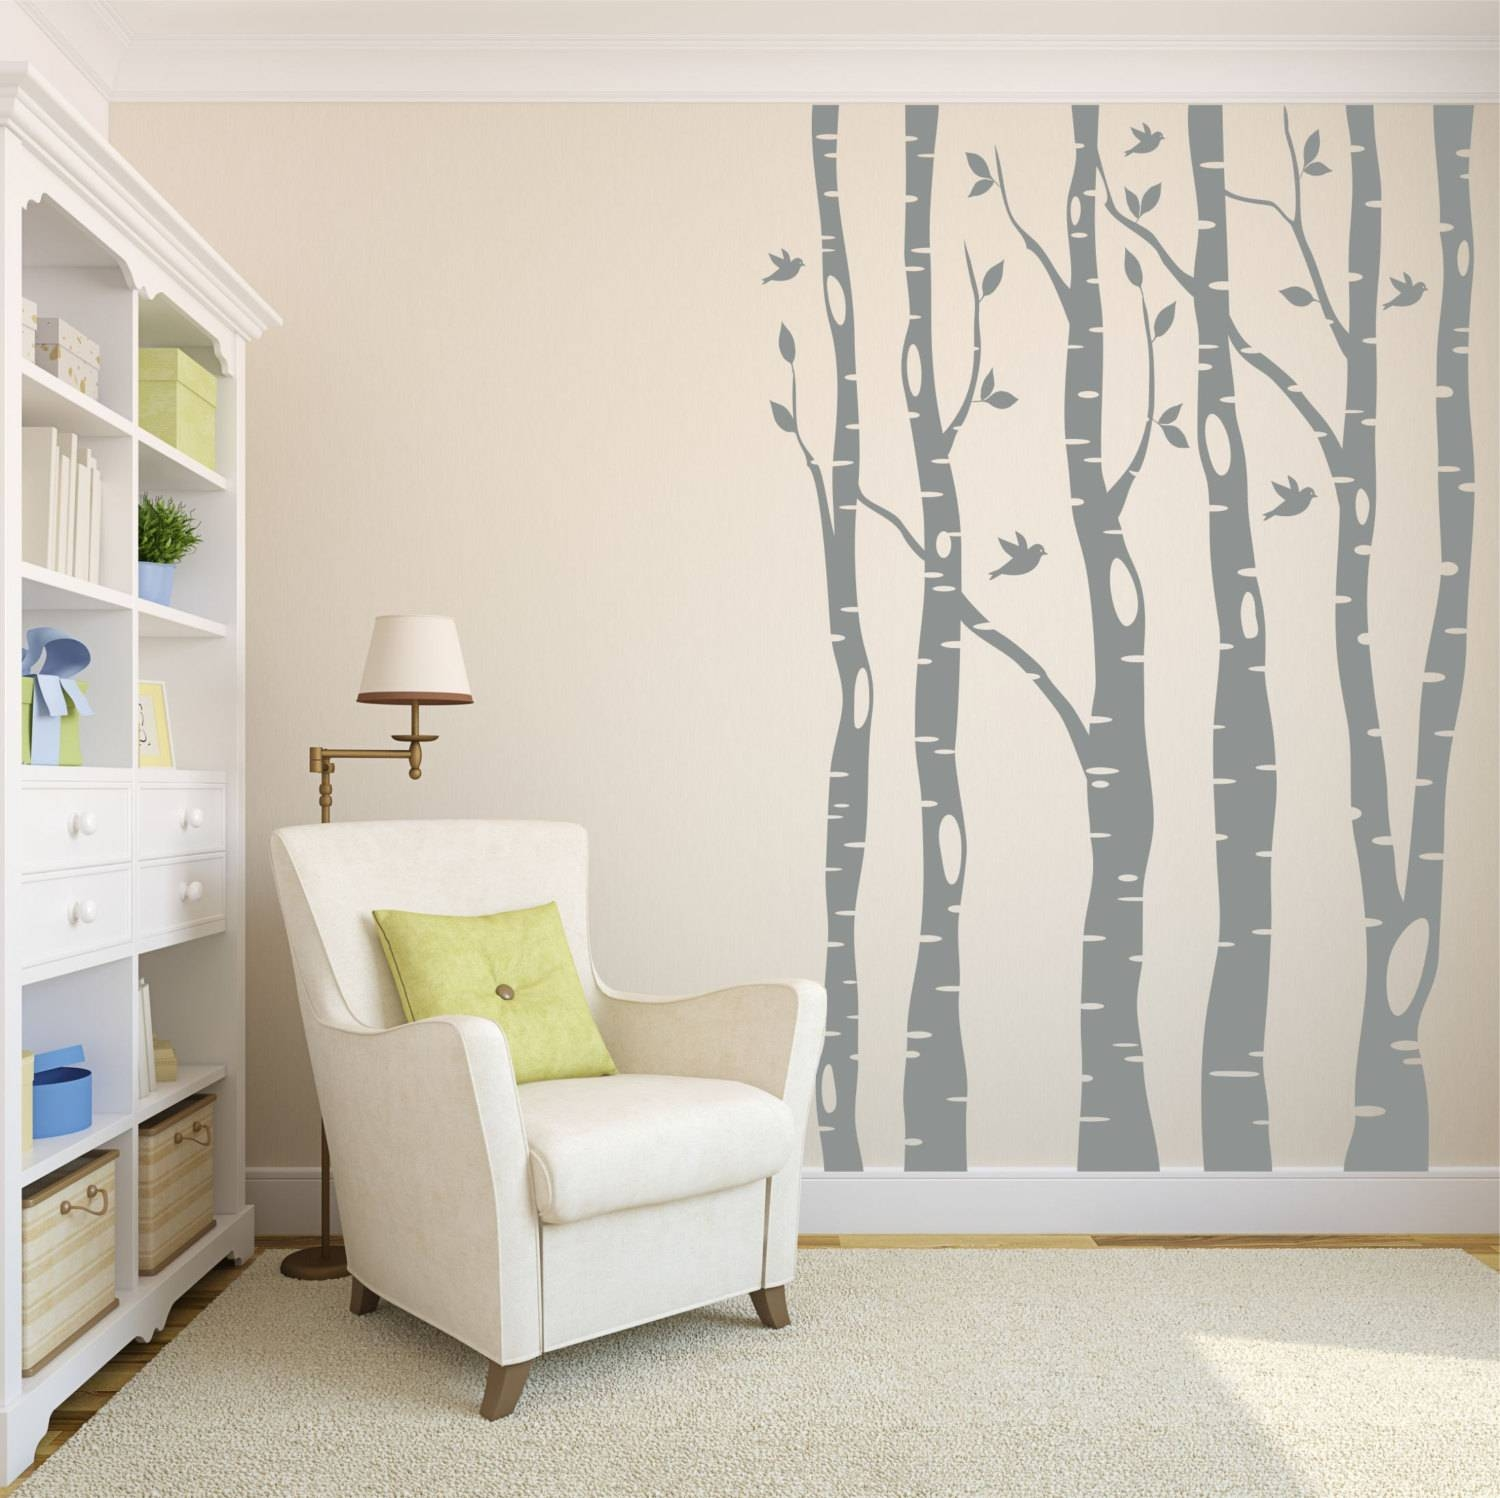 Tree Wall Decals // Birch Tree Decals // Living Room Decor // With Regard To Recent Aspen Tree Wall Art (View 18 of 20)